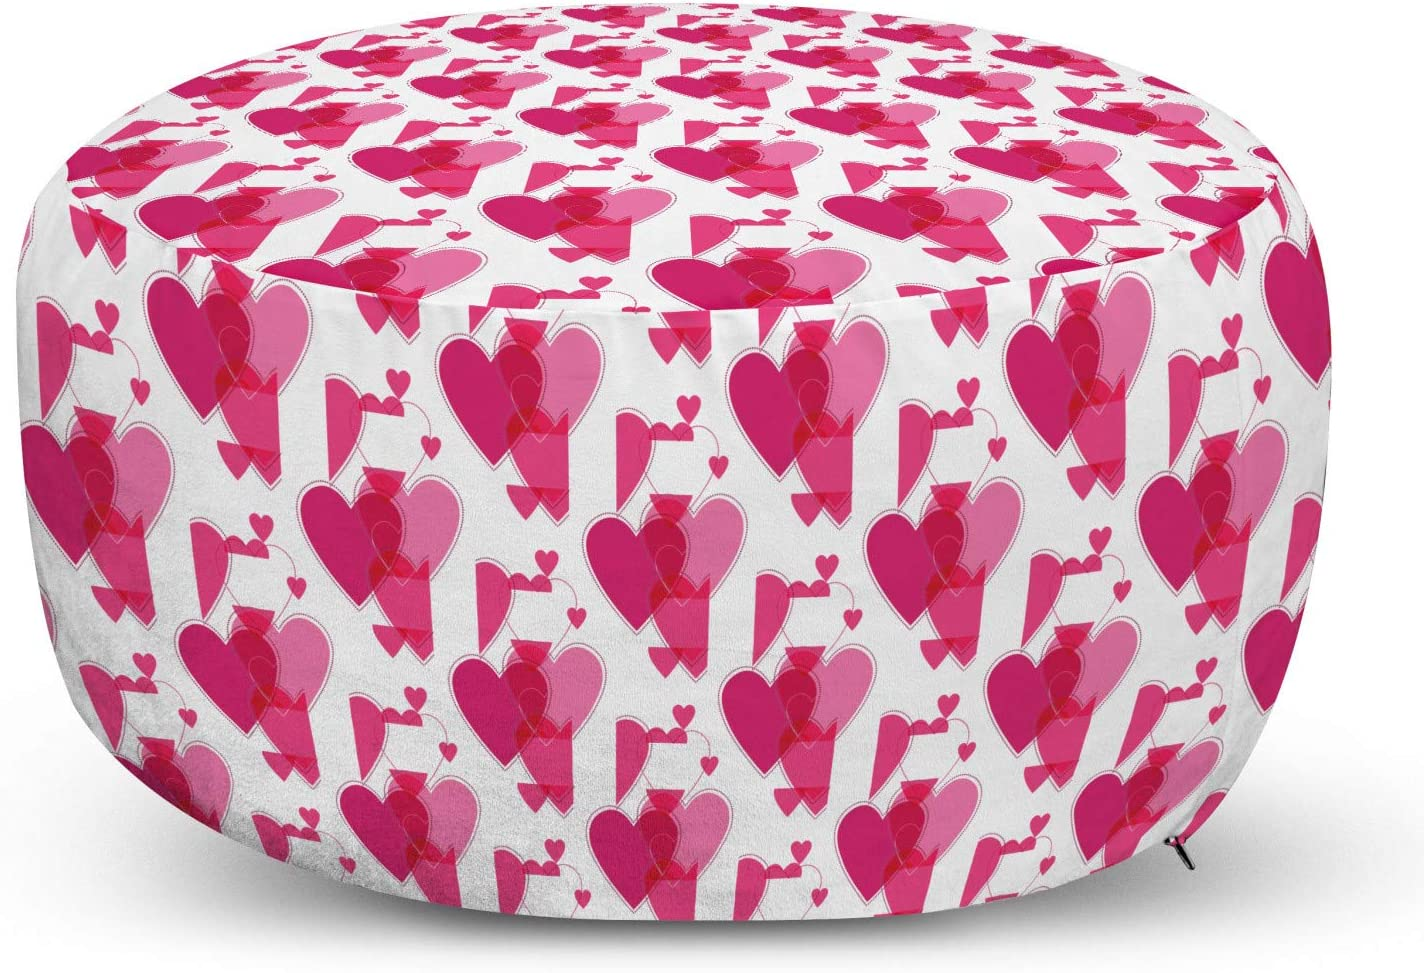 Ambesonne Valentine's Day Ottoman Free Shipping Cheap Bargain Gift Pouf Monochrome Complete Free Shipping Pattern Style